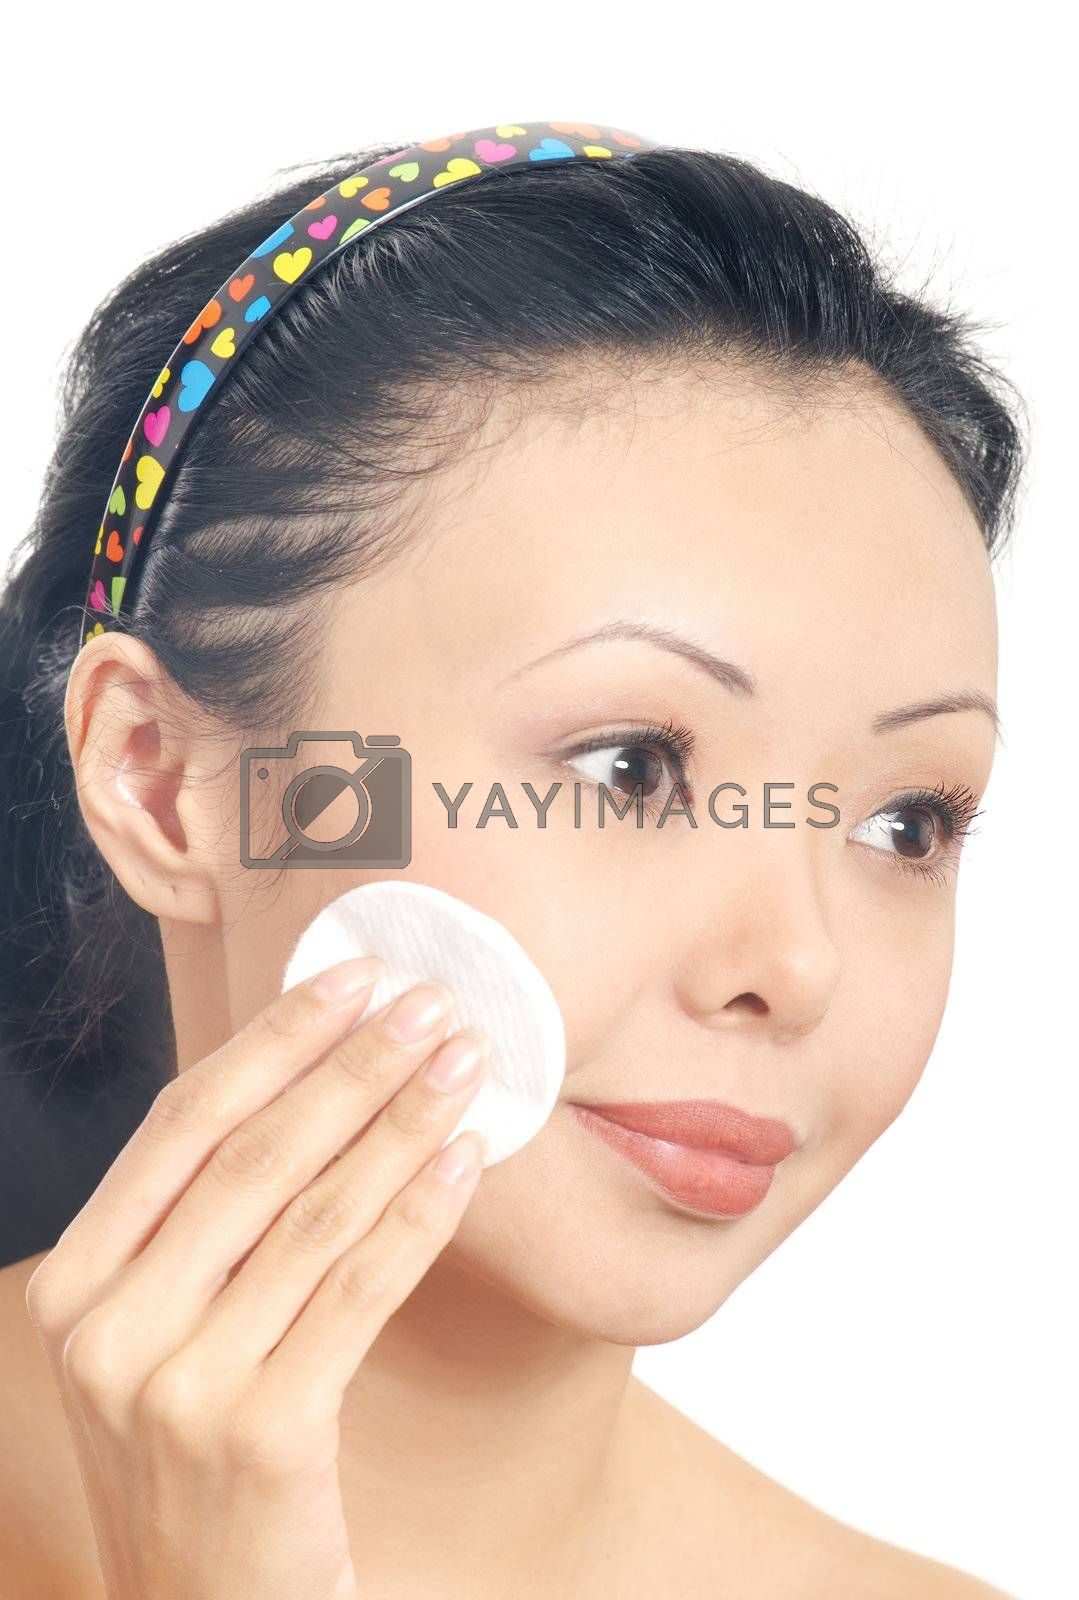 Sensual photo of the young model with cleaning sponge